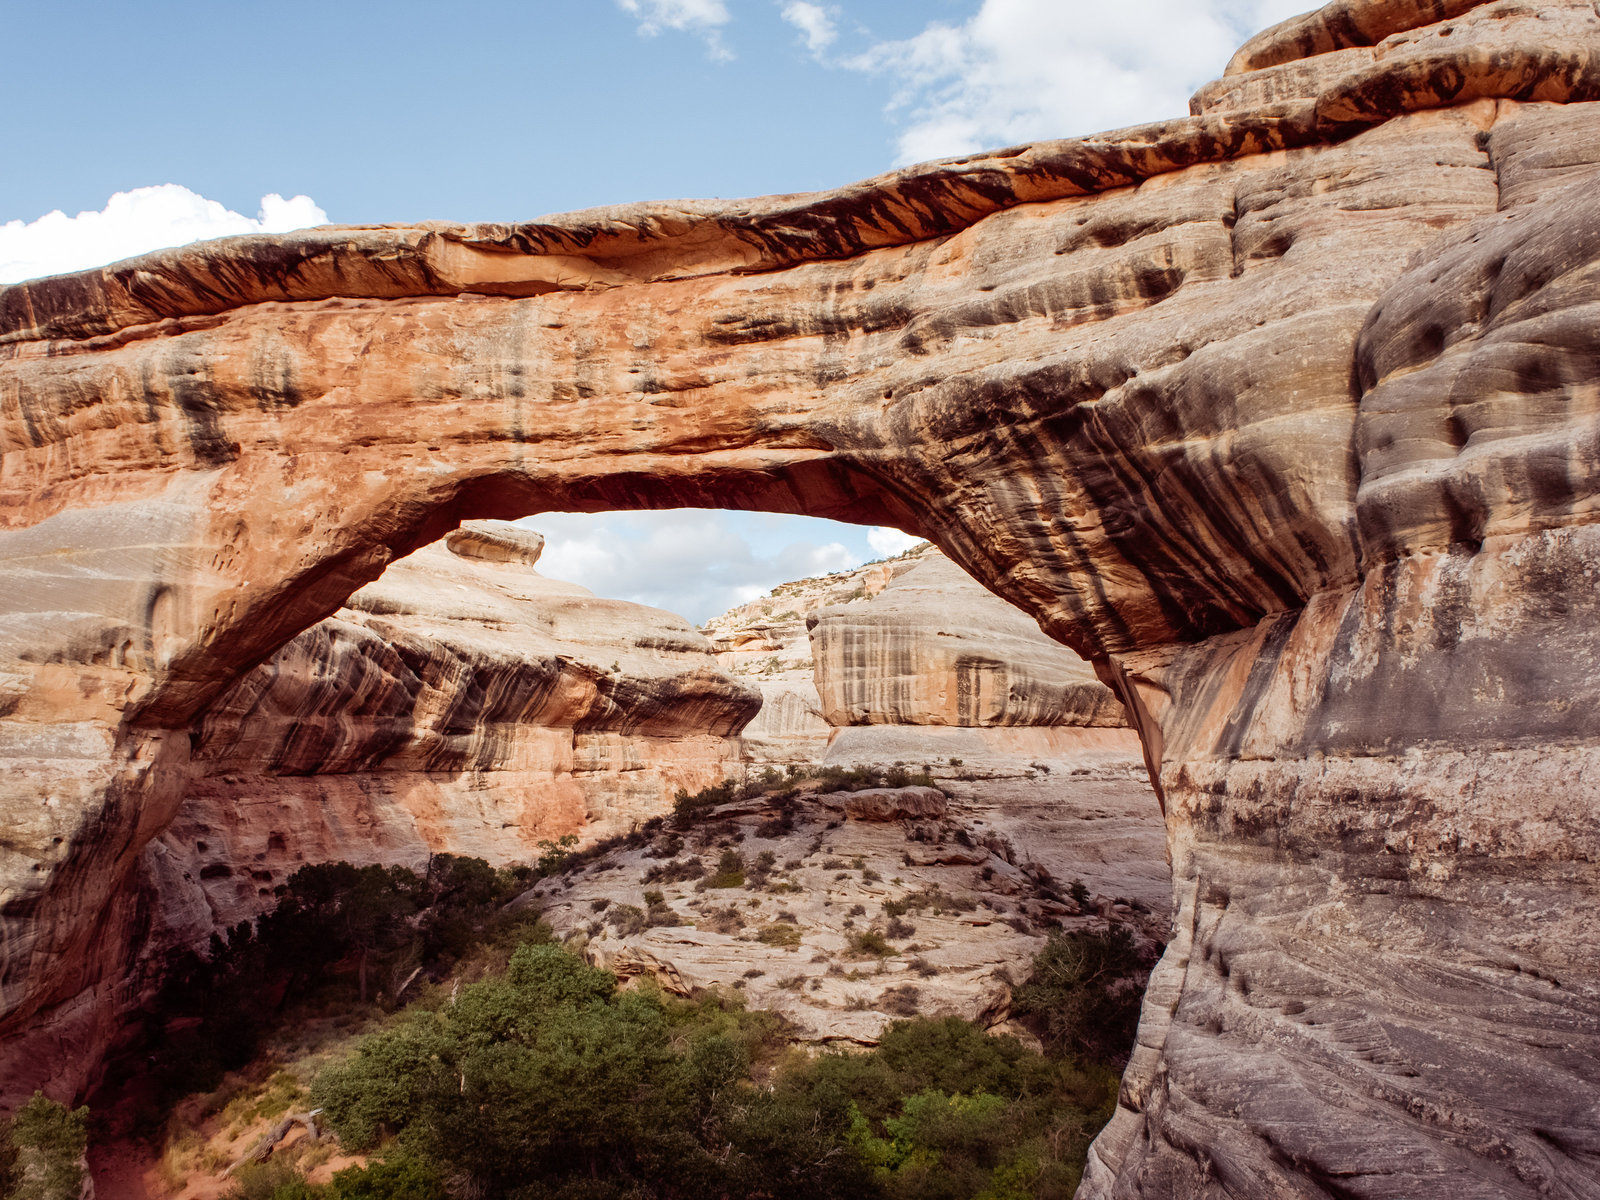 Sasha_Reiko_Photography_Travel_Utah_Arches_Canyon_Lands_Zion_Grand_Canyon-8